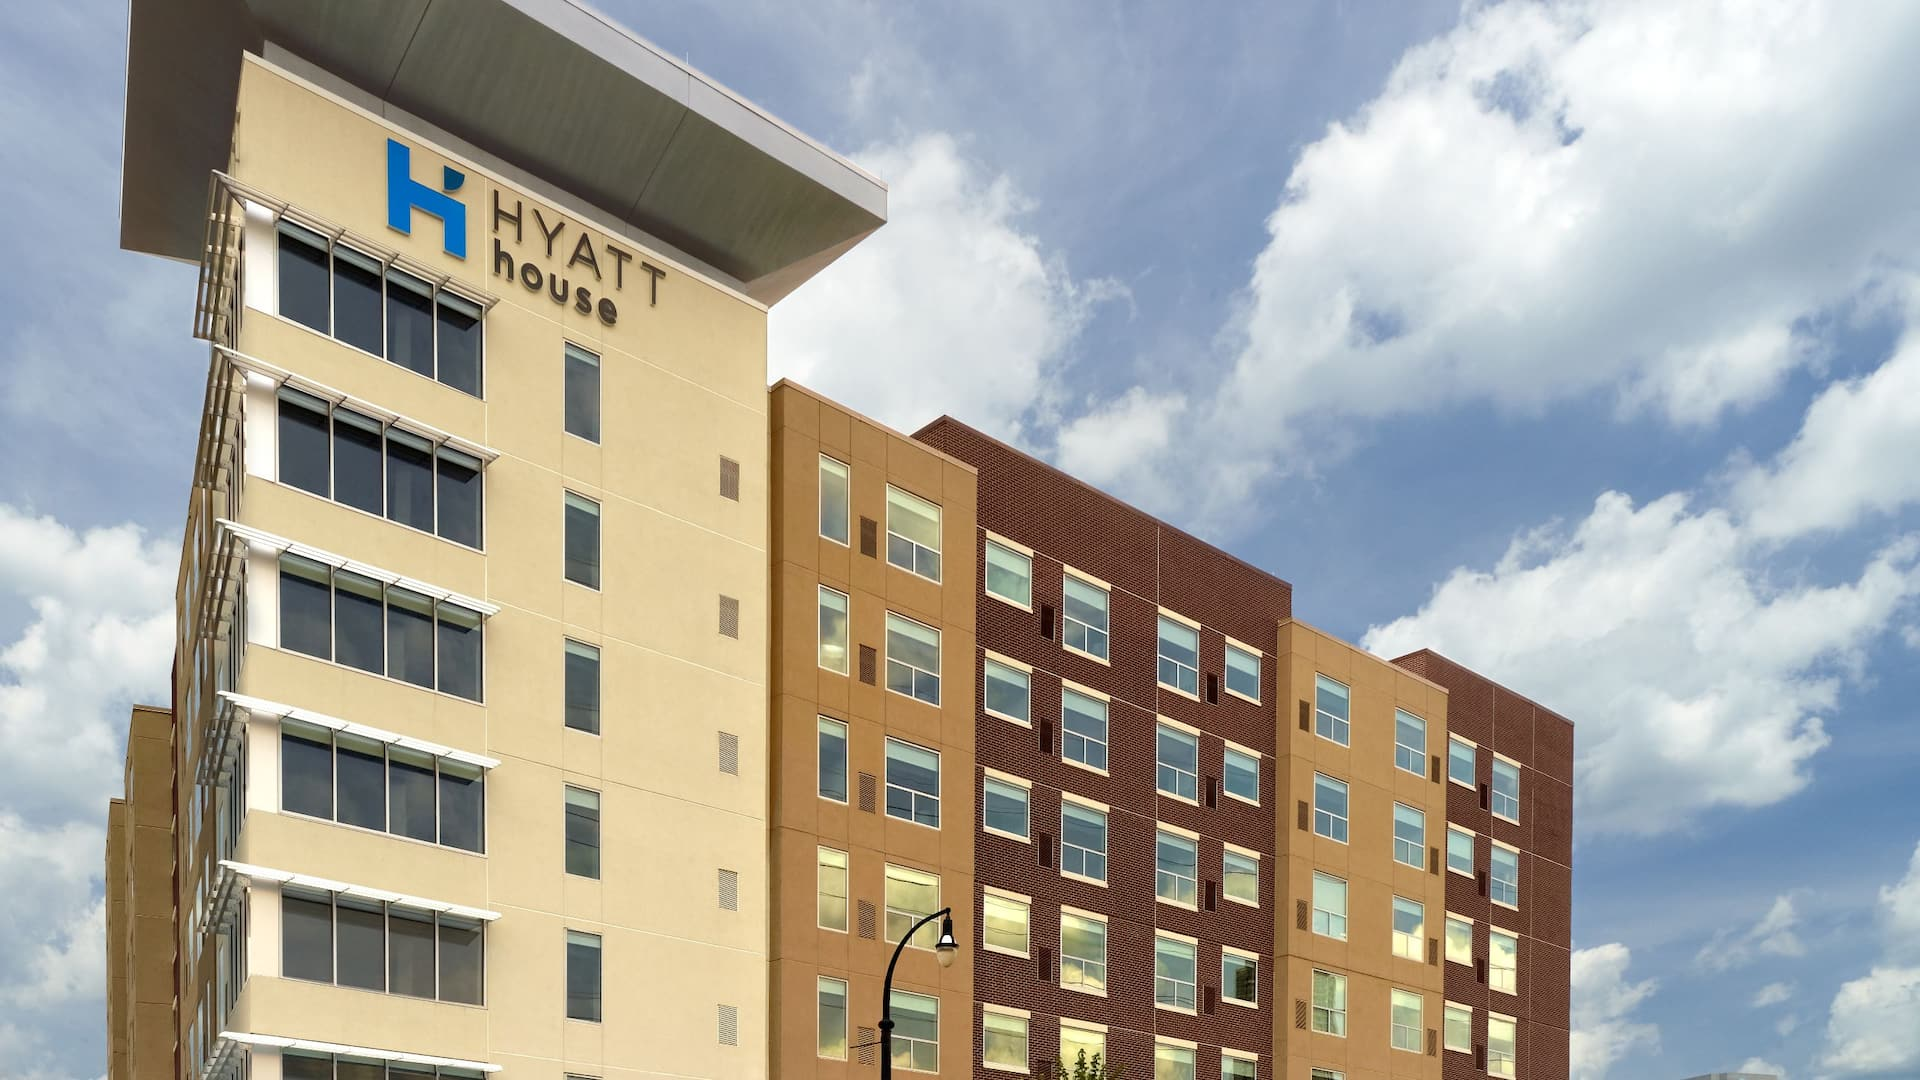 Hyatt House Atlanta Exterior